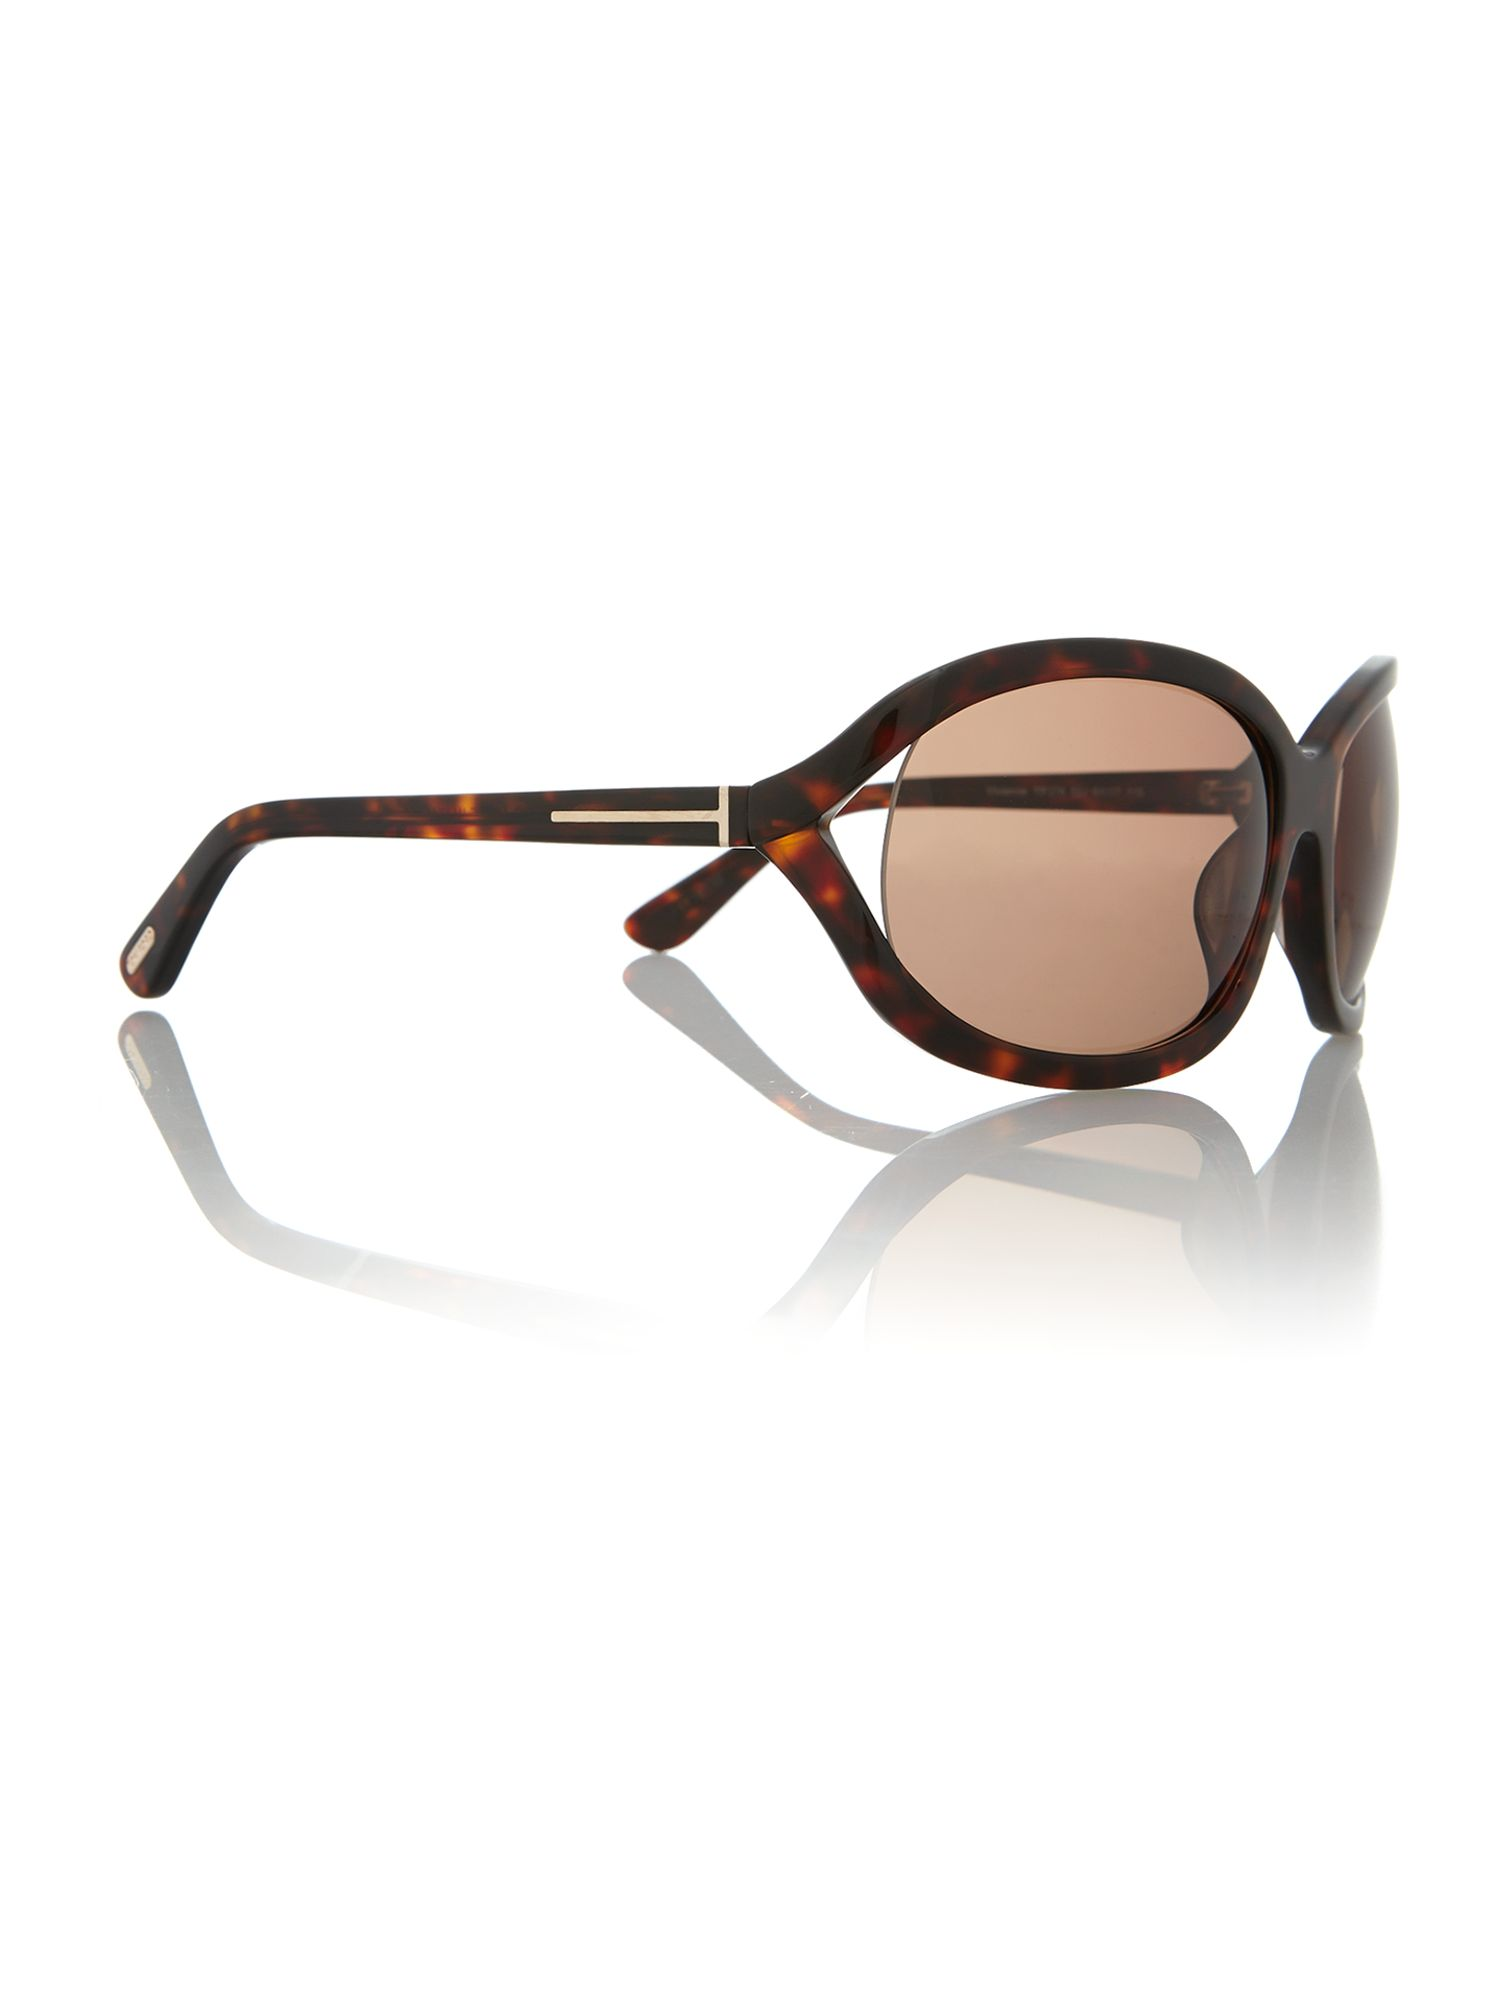 Ladies FT0278 tortoise brown vivienne